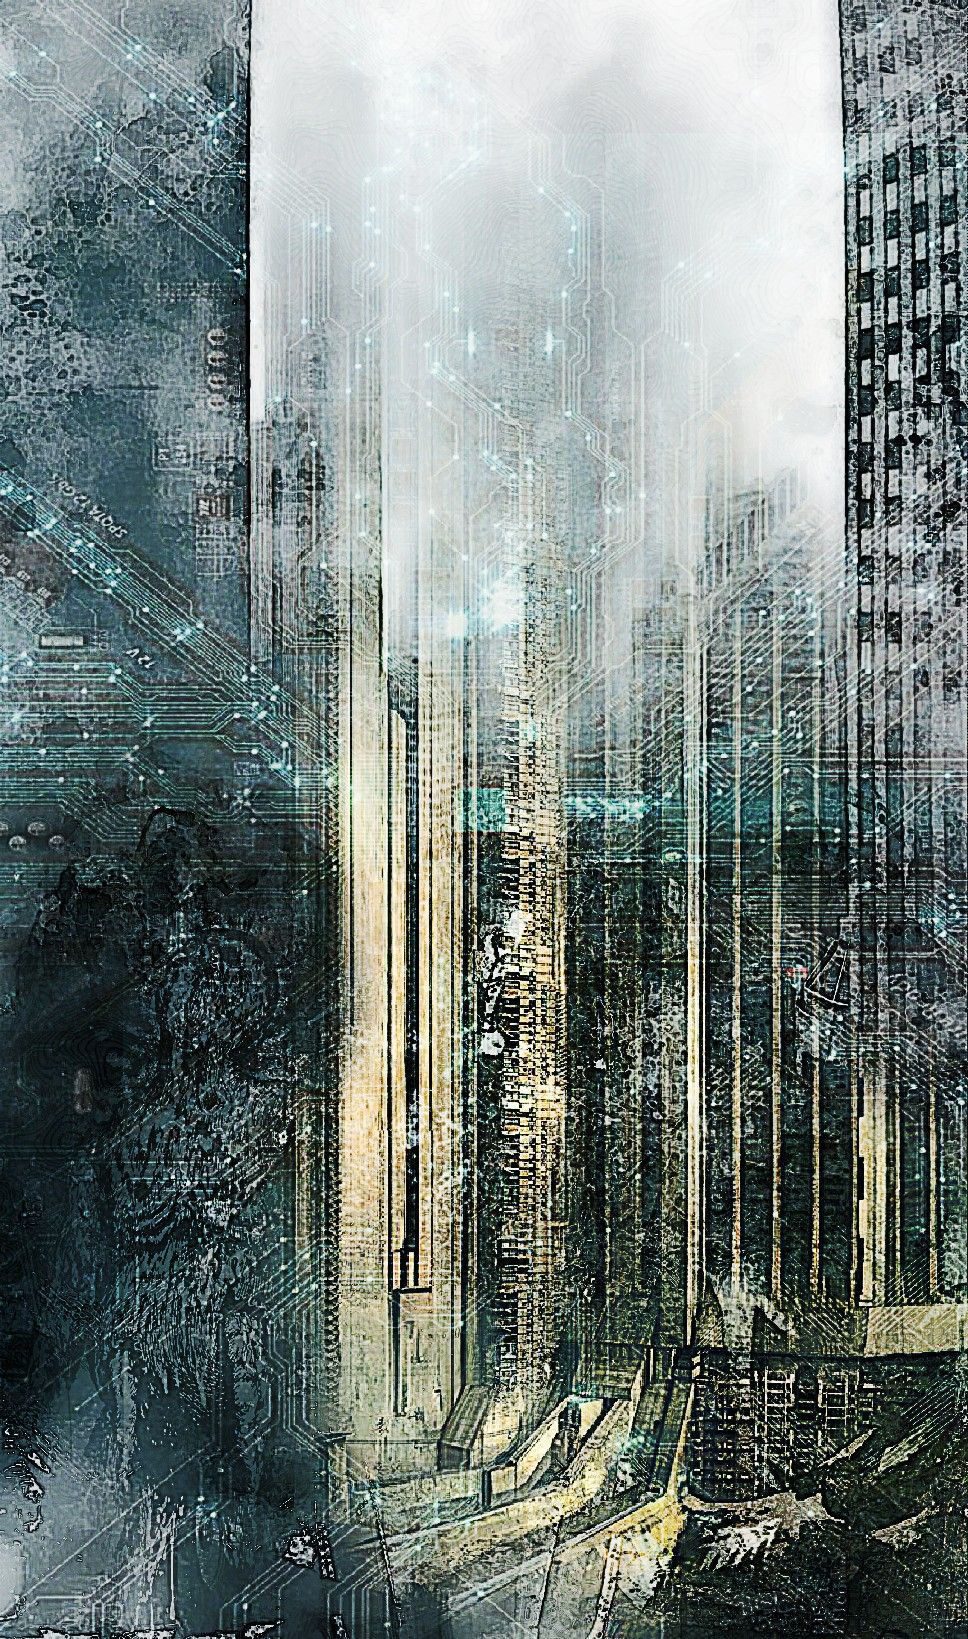 Background dystopian city by Hnh nh 968x1639